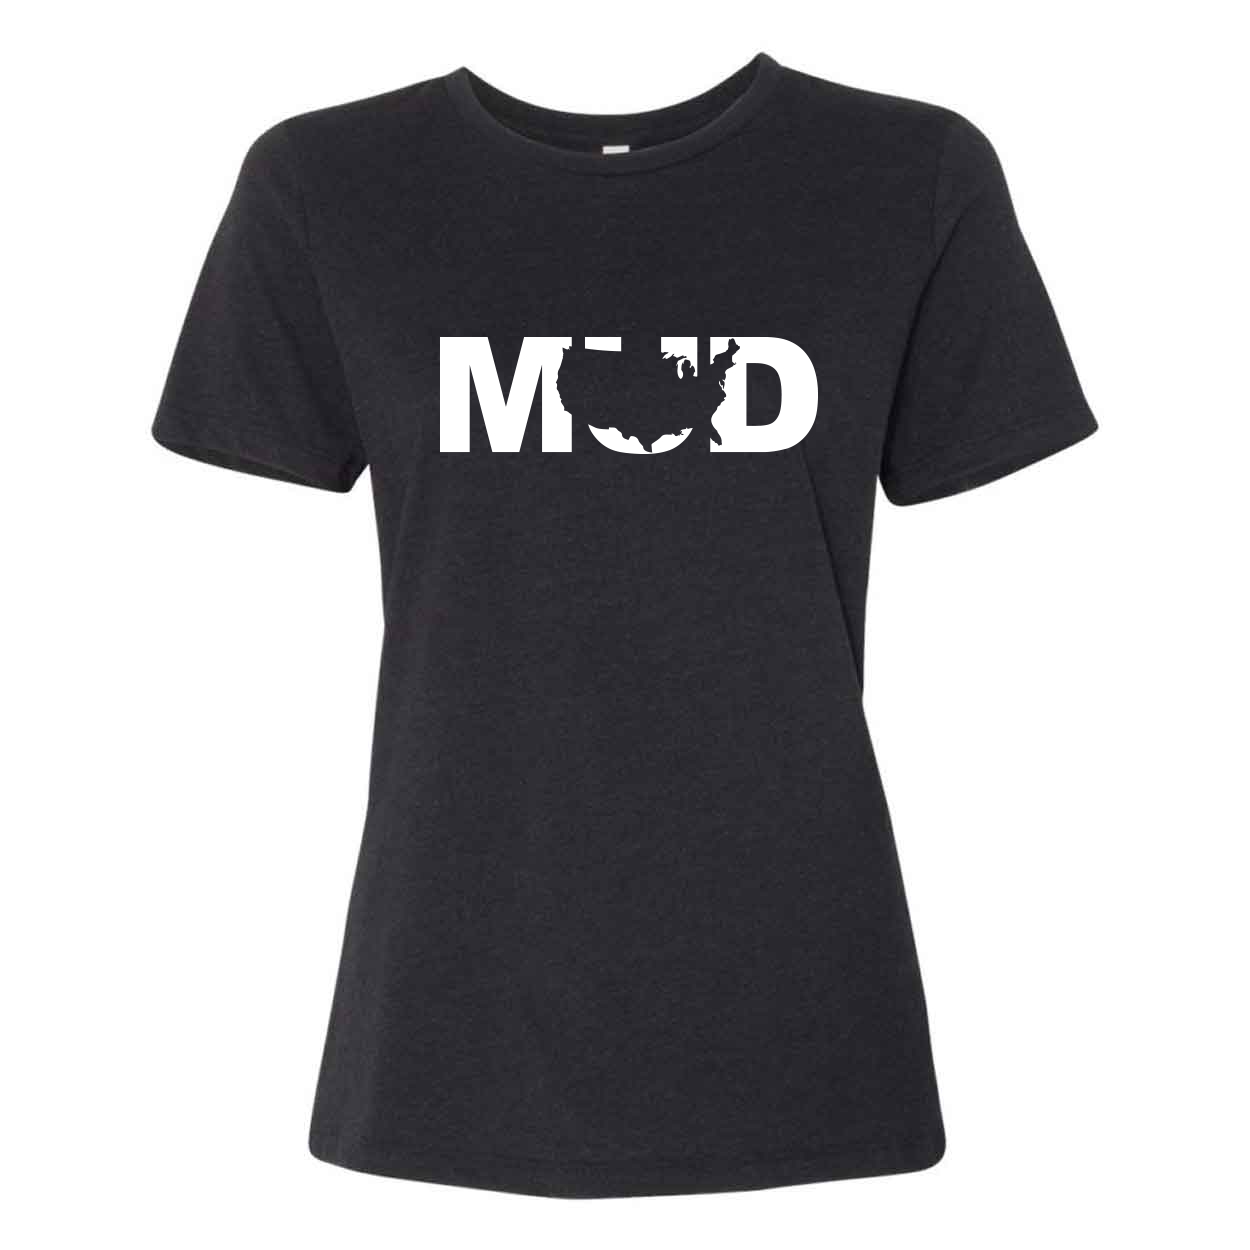 Mud United States Classic Women's Relaxed Jersey T-Shirt Black Heather (White Logo)